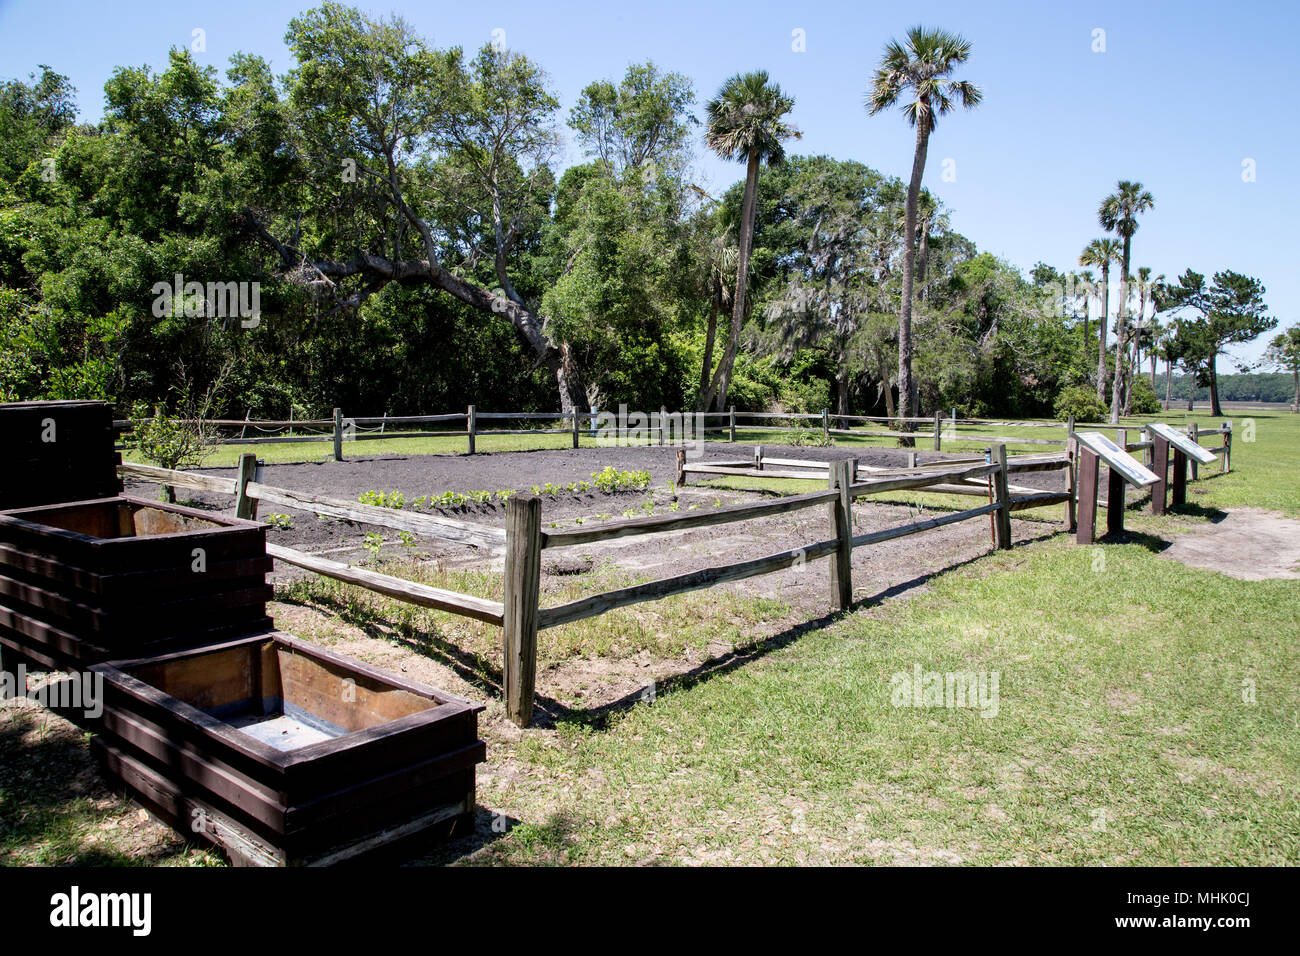 Kingsley Plantation at Timucuan Preserve offers an example of a historically accurate vegetable garden - Stock Image